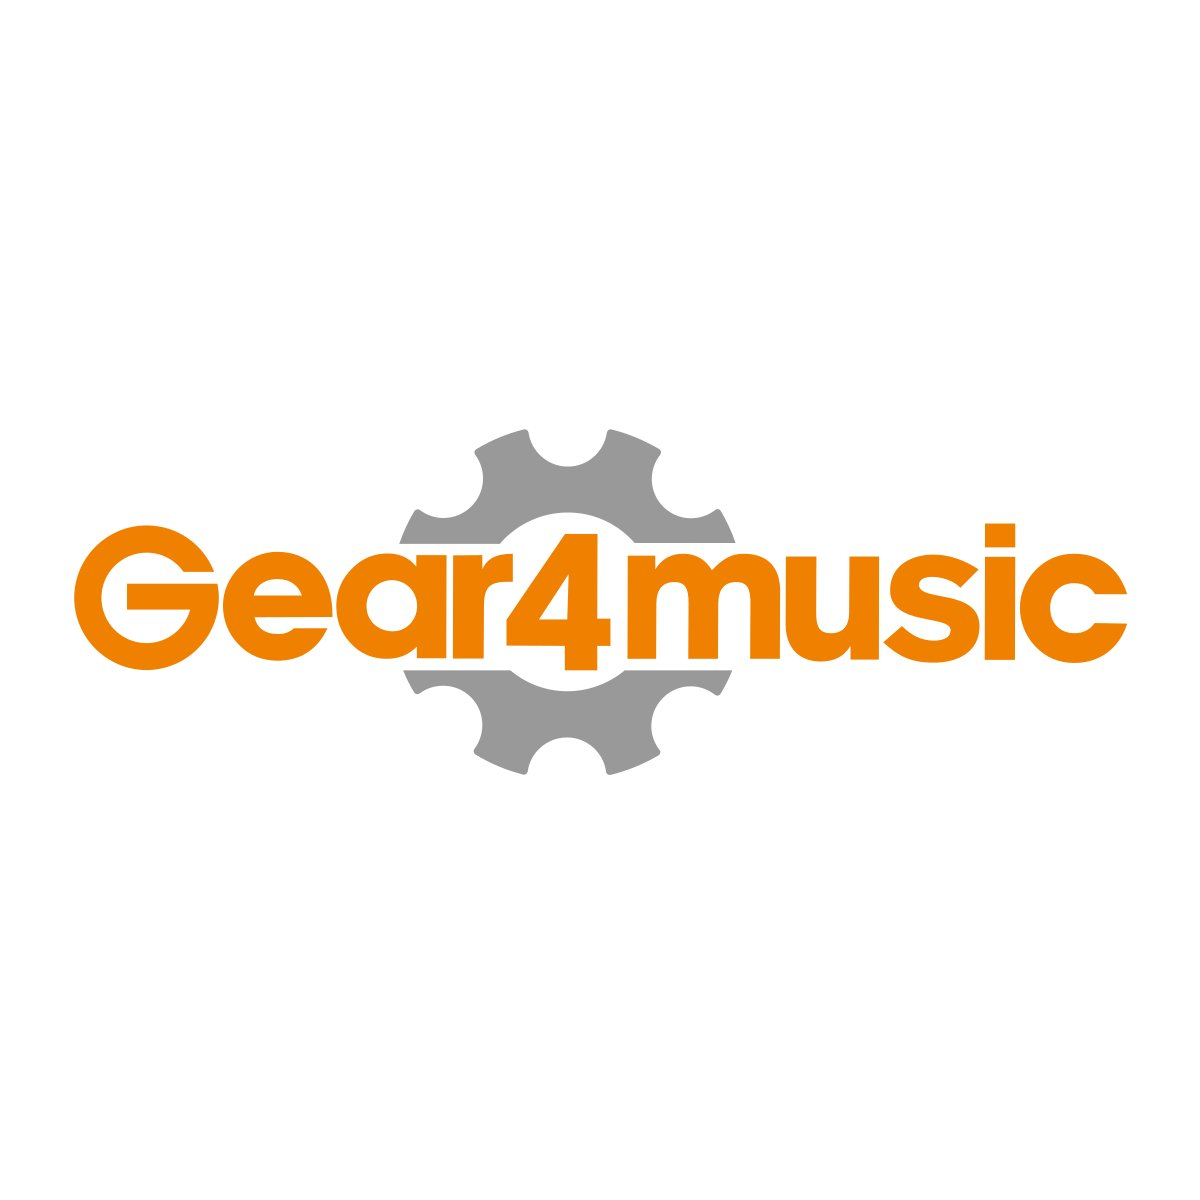 Deluxe Junior Klassiek Gitaarpakket van Gear4music, Blauwe